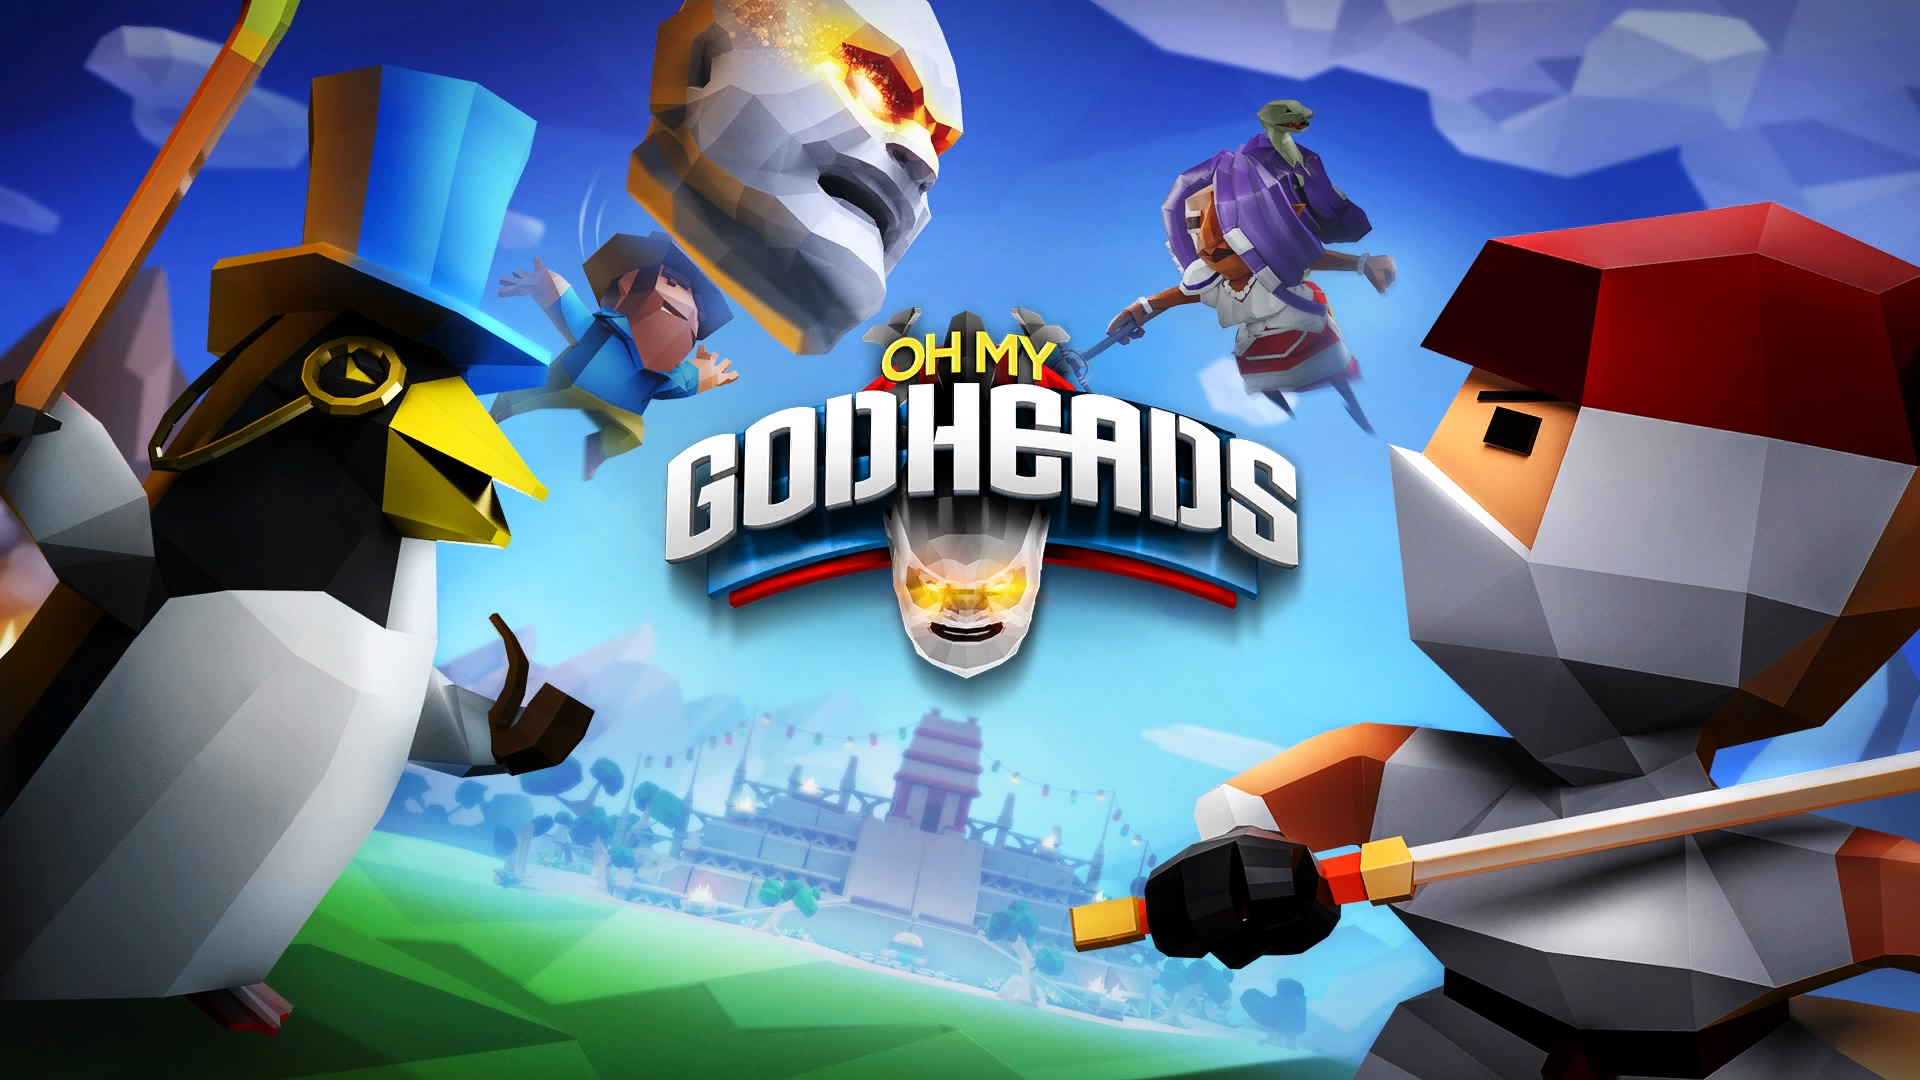 Review: Oh My Godheads